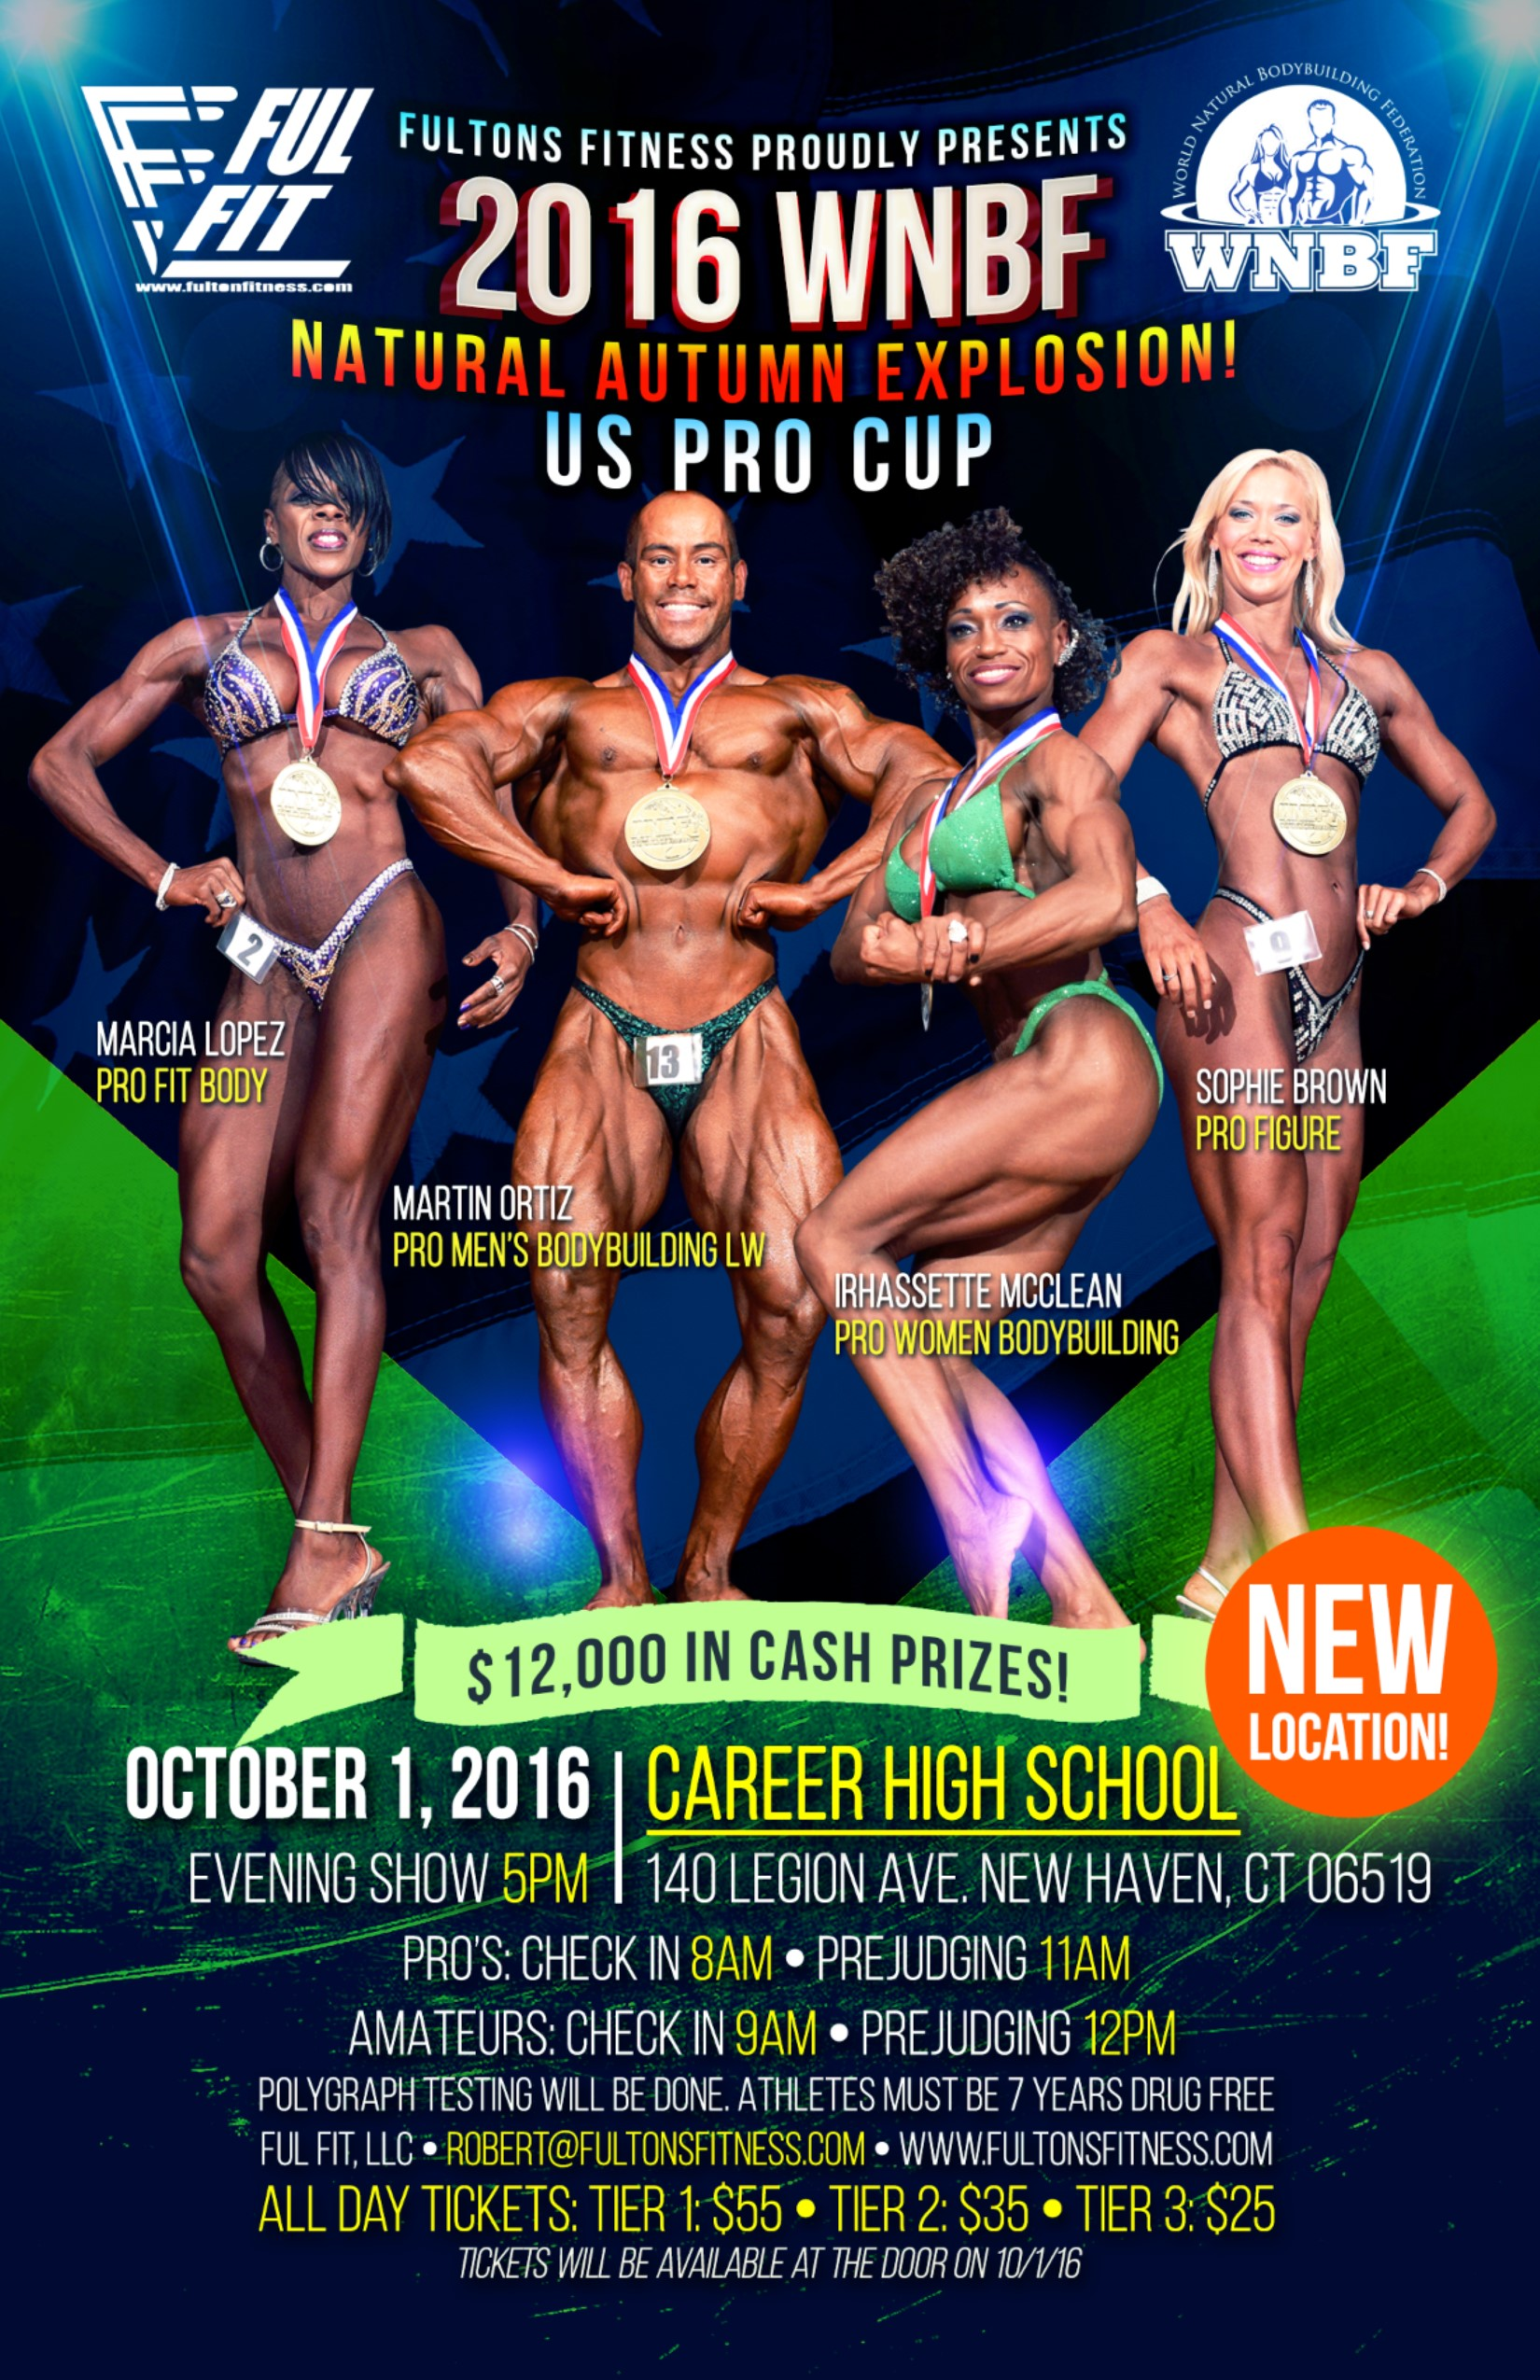 2016 wnbf-pro-us-cup-and-inbf-autumn-explosion-new-haven-connecticut